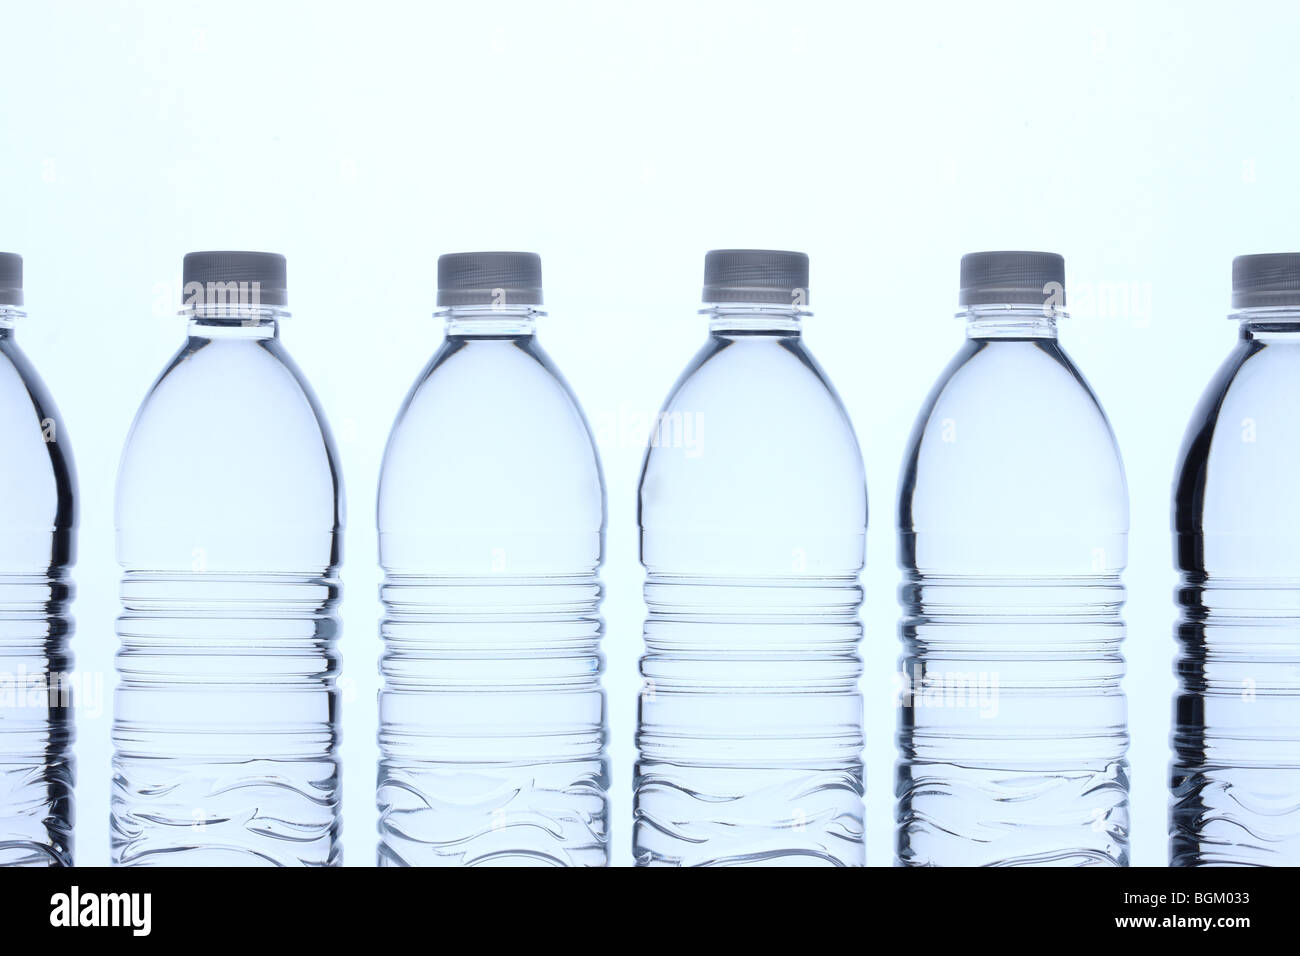 Bottles of water in row - Stock Image